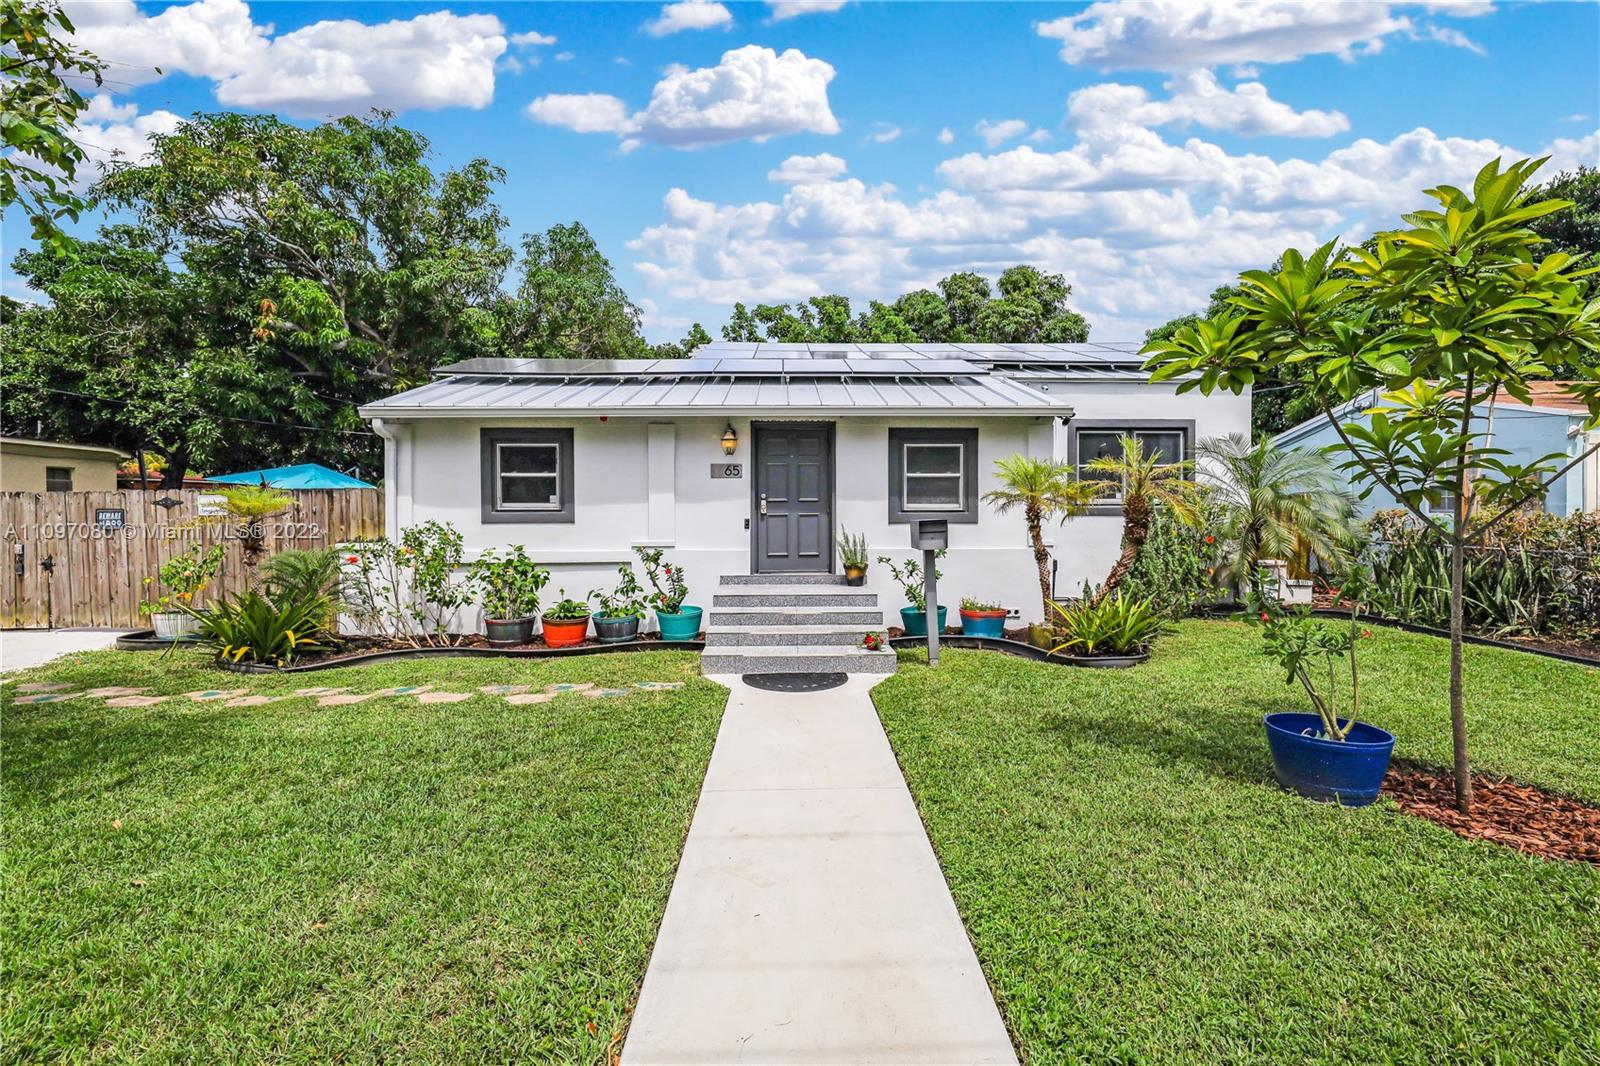 Single Family Home,For Sale,65 NW 49th St, Miami, Florida 33127,Brickell,realty,broker,condos near me